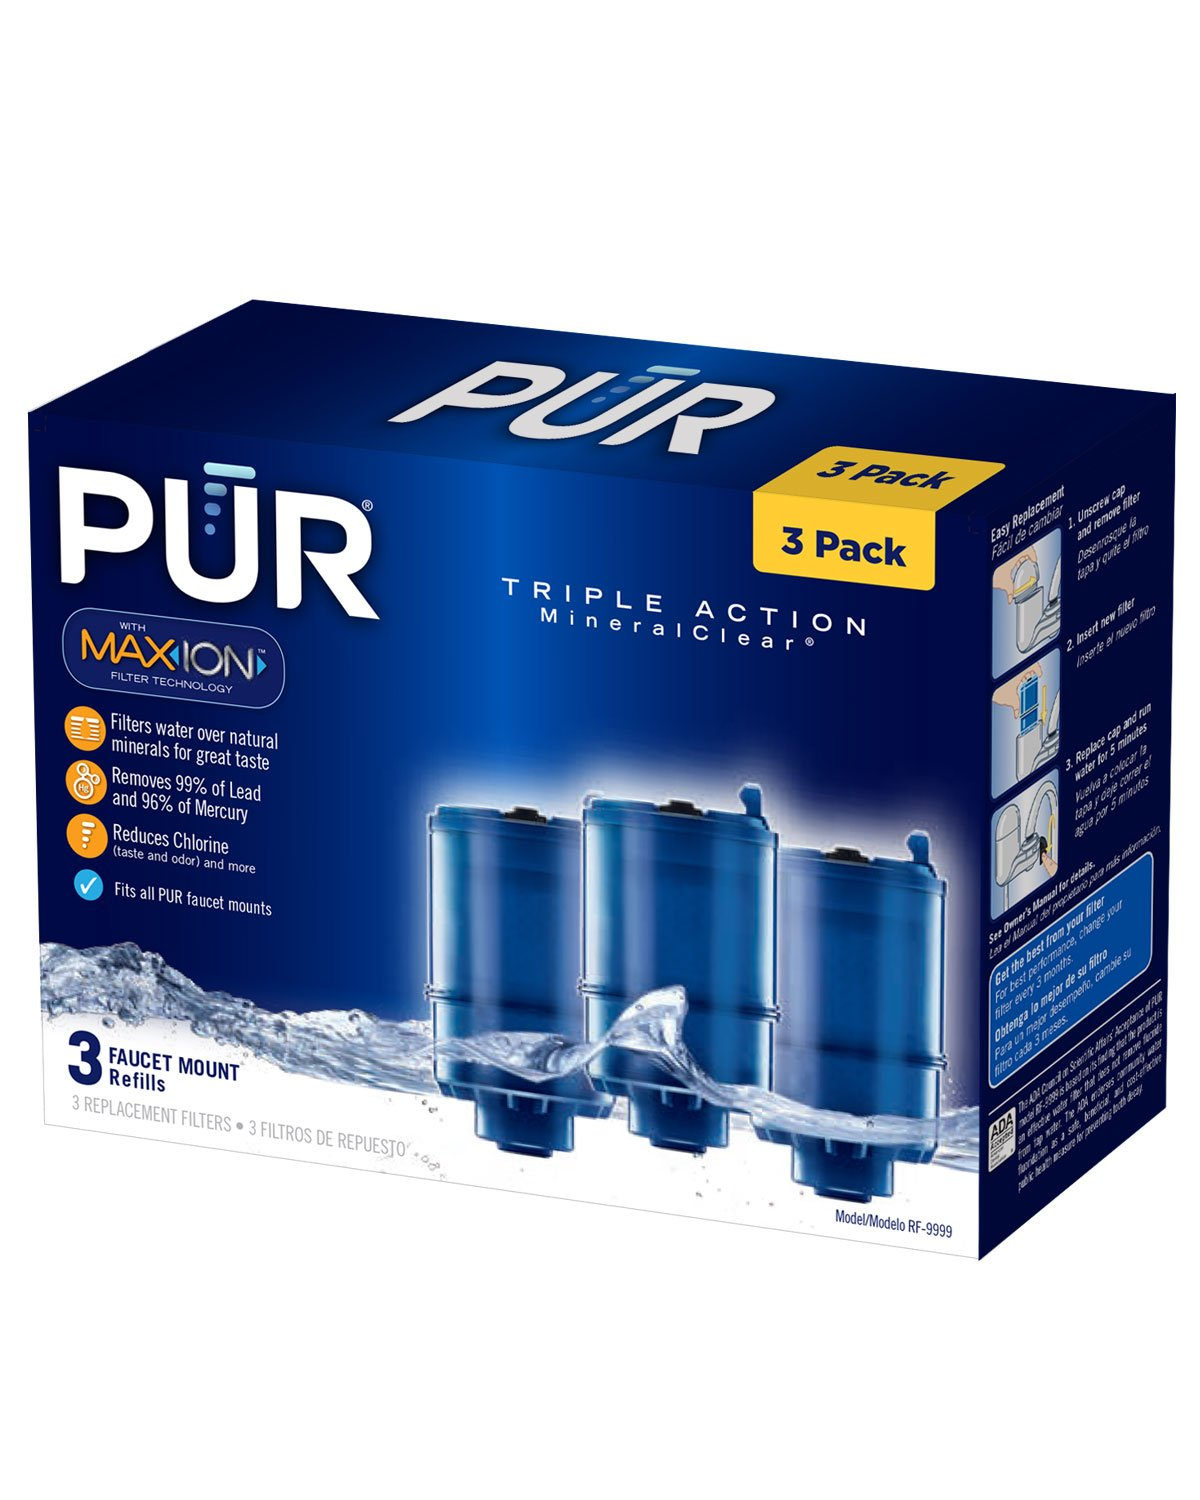 pur rf9999 faucet replacement water filter refill 3pack faucet mount water filters amazoncom